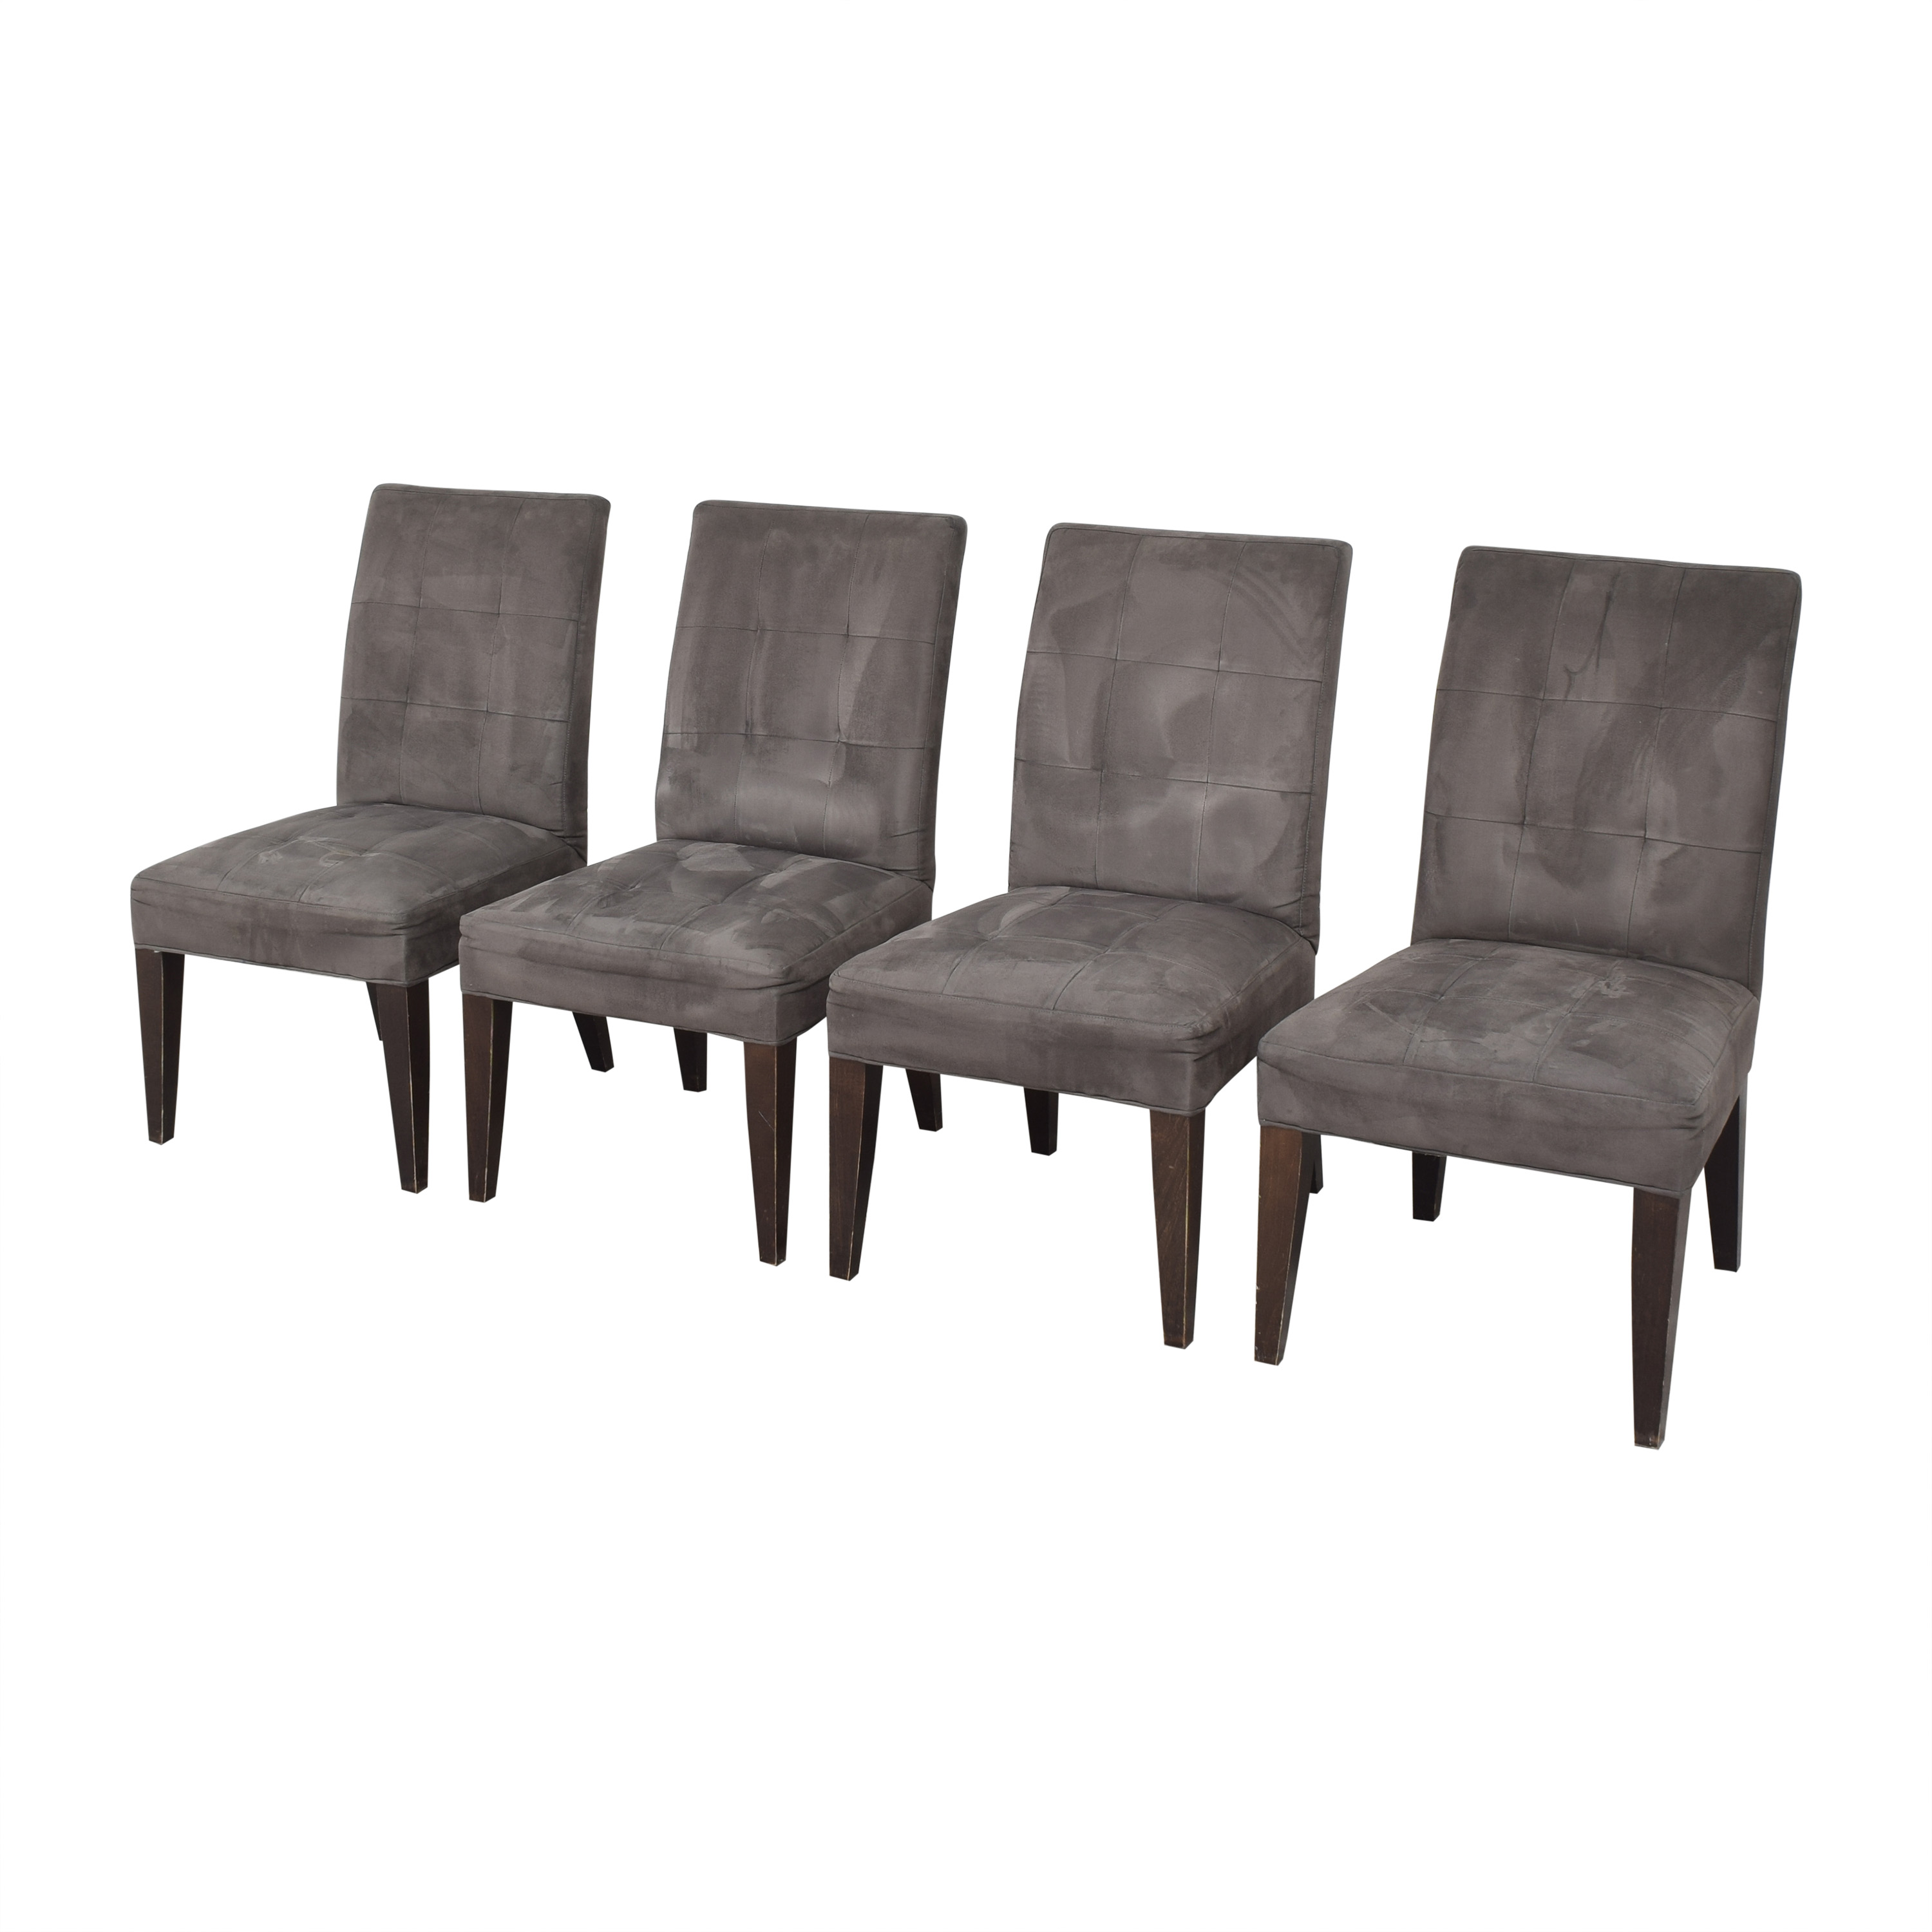 Lee Industries Lee Industries Upholstered Dining Side Chairs for sale